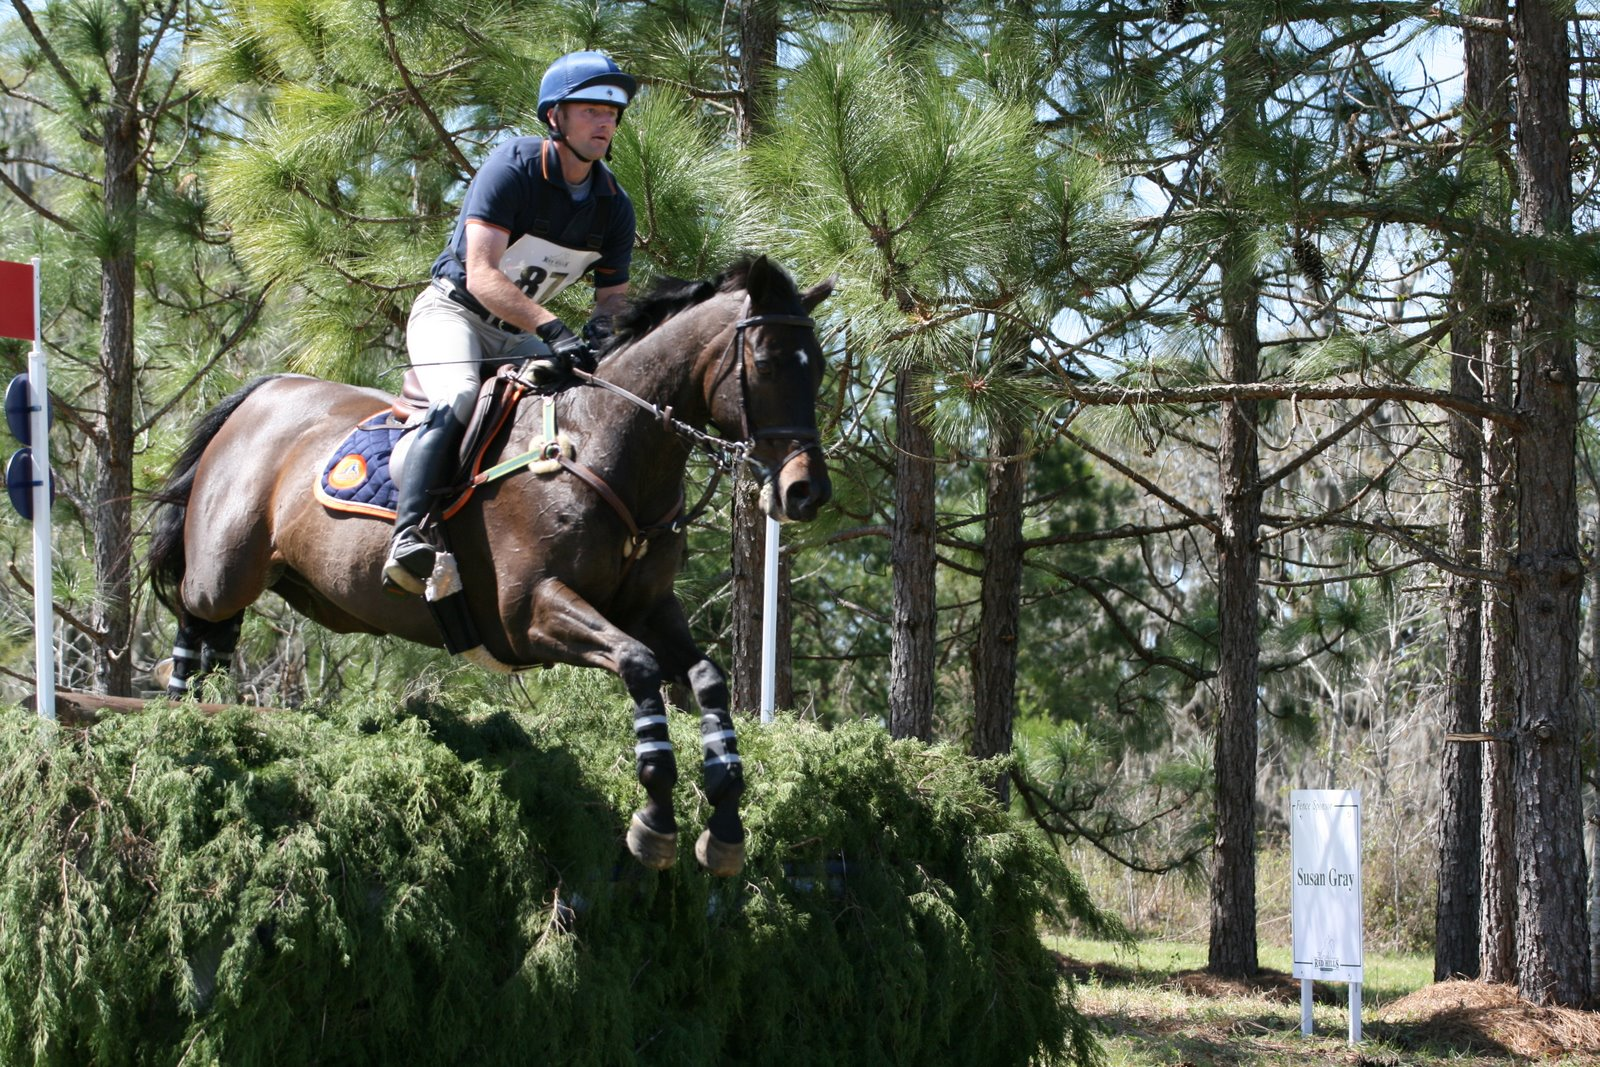 Horses jumping cross country - photo#22